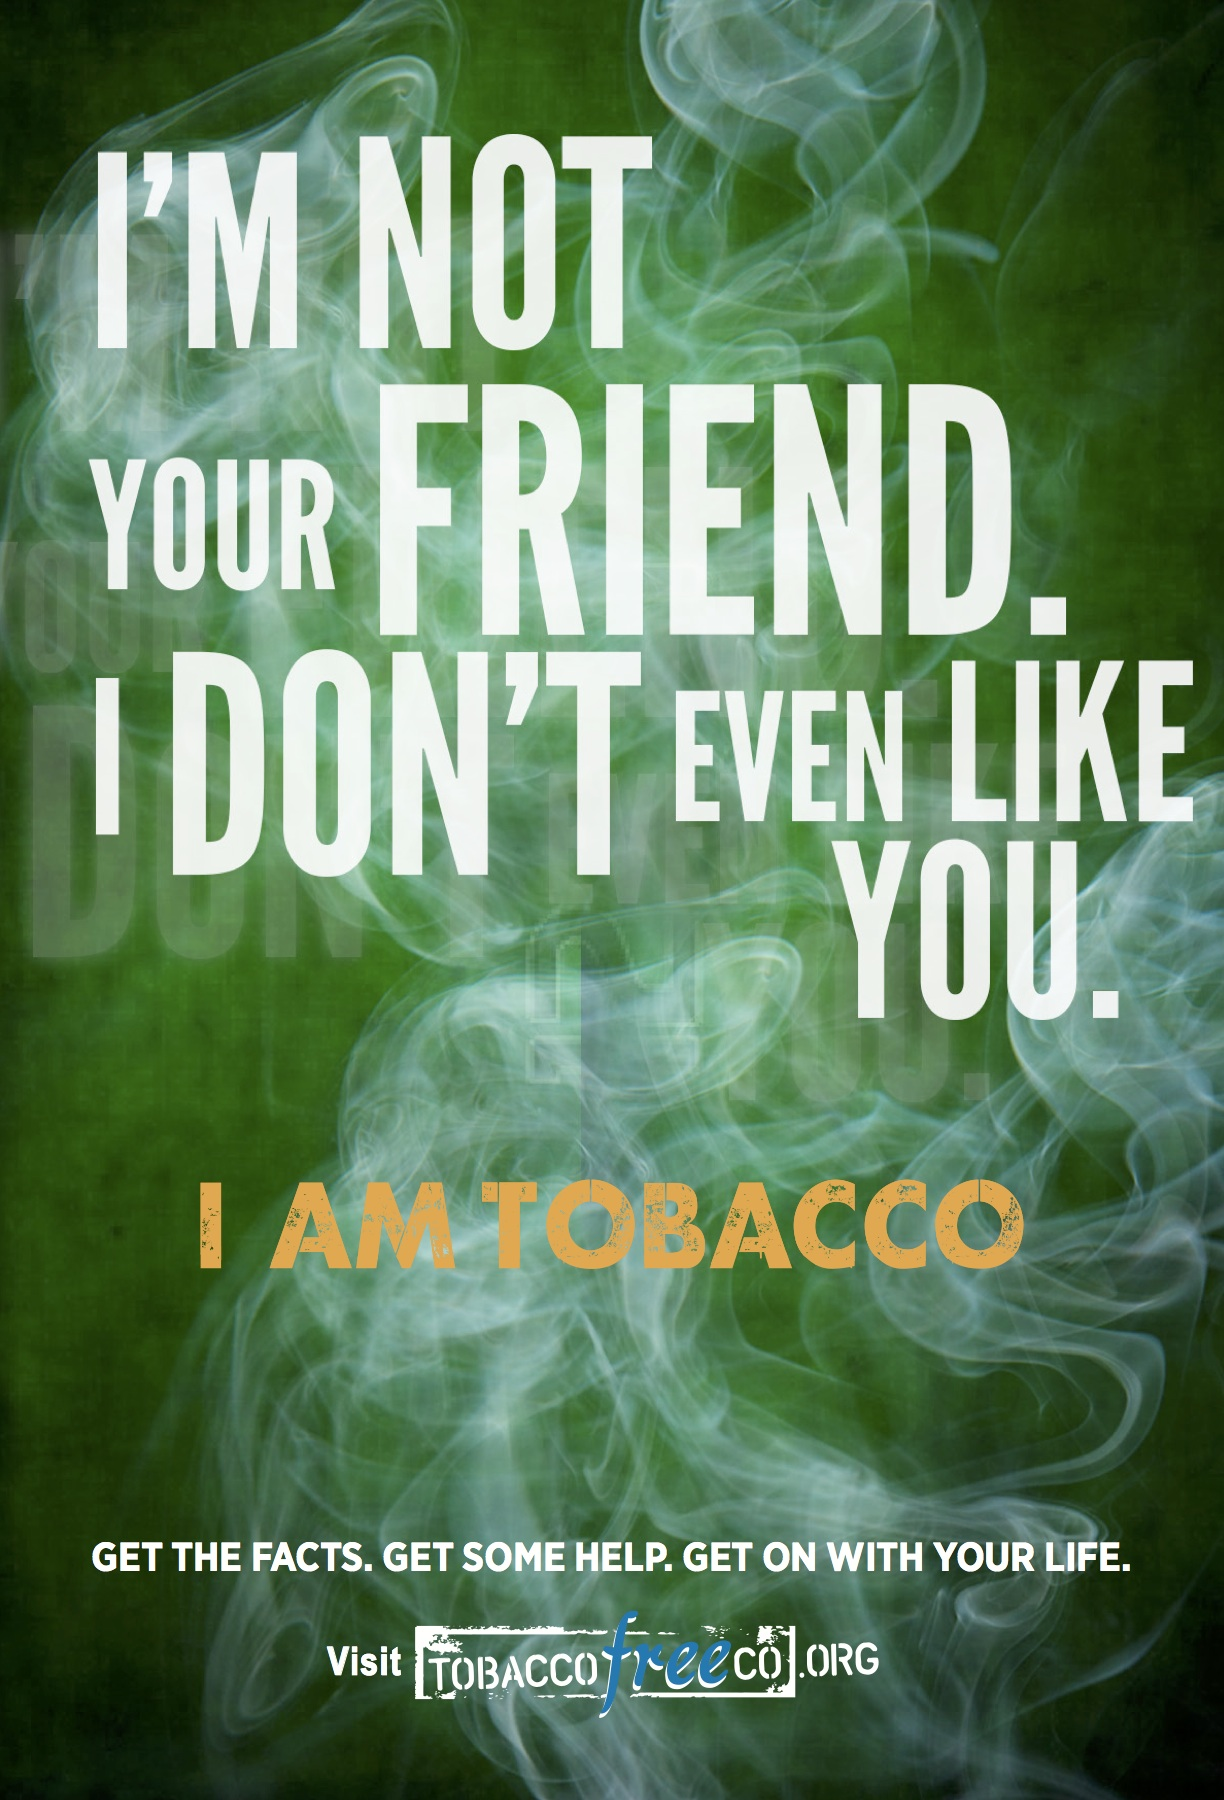 CO Anti Smoking Campaign